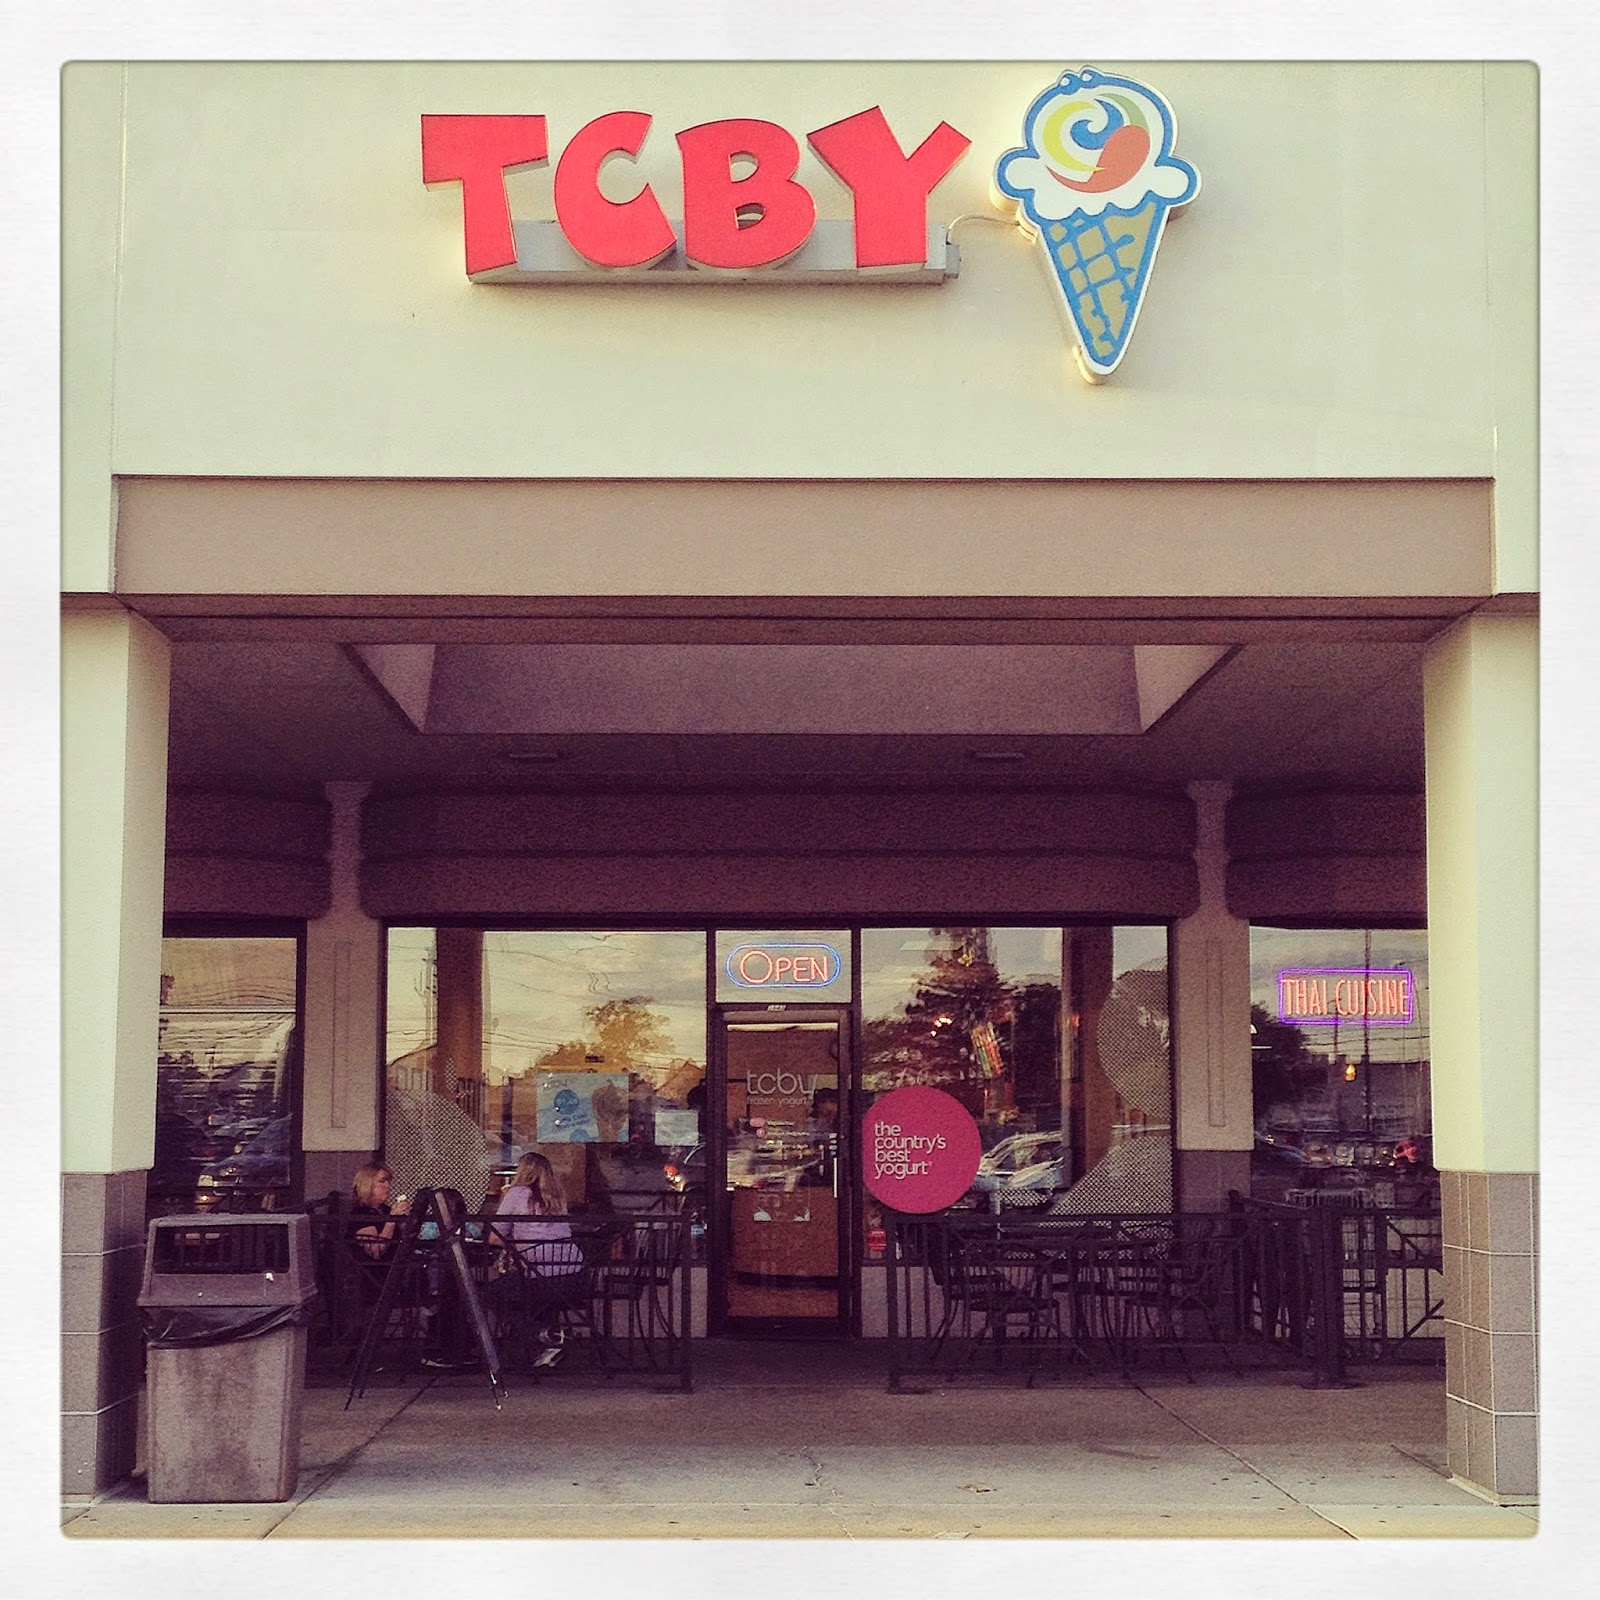 TCBY Storefront Exterior